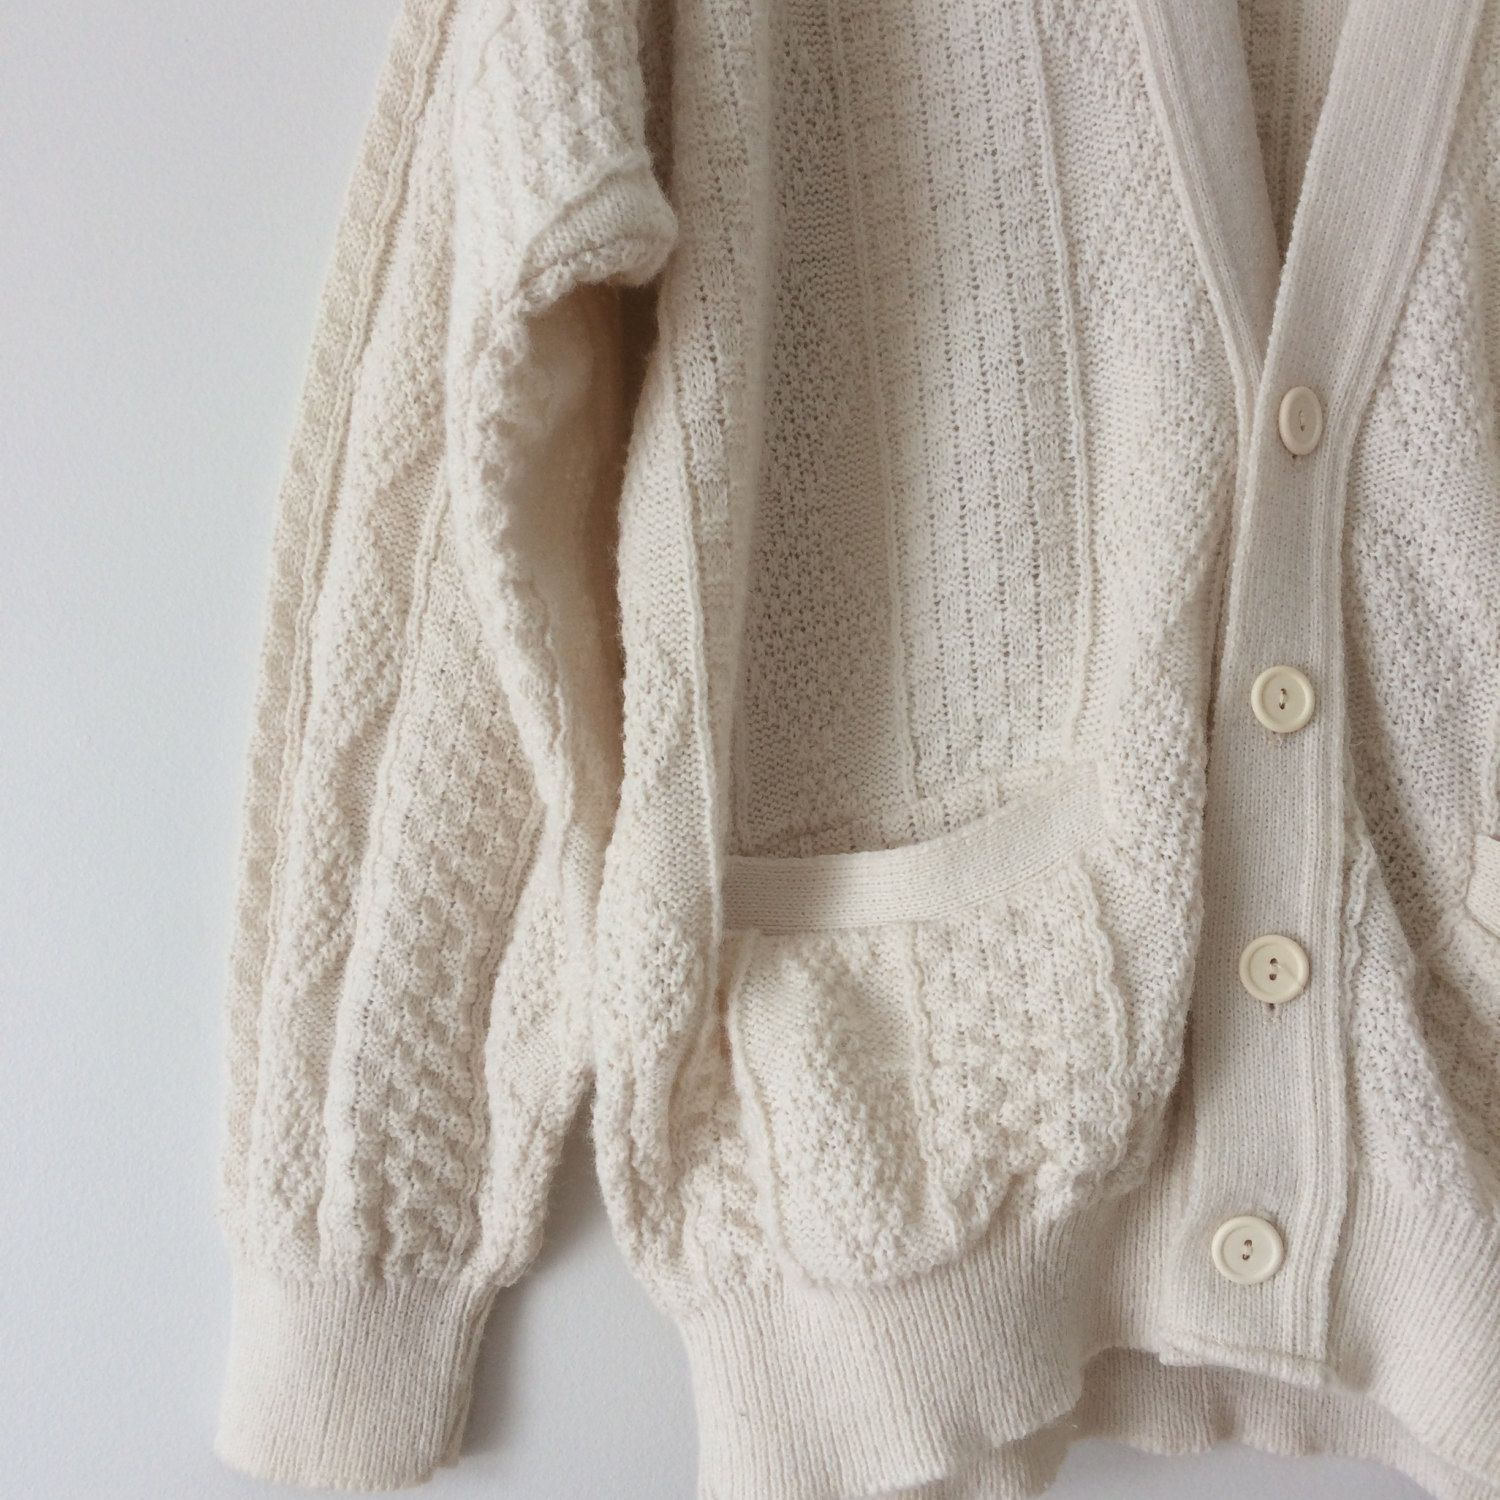 Oversized sweater, knit sweater, vintage sweater, vintage knit ...